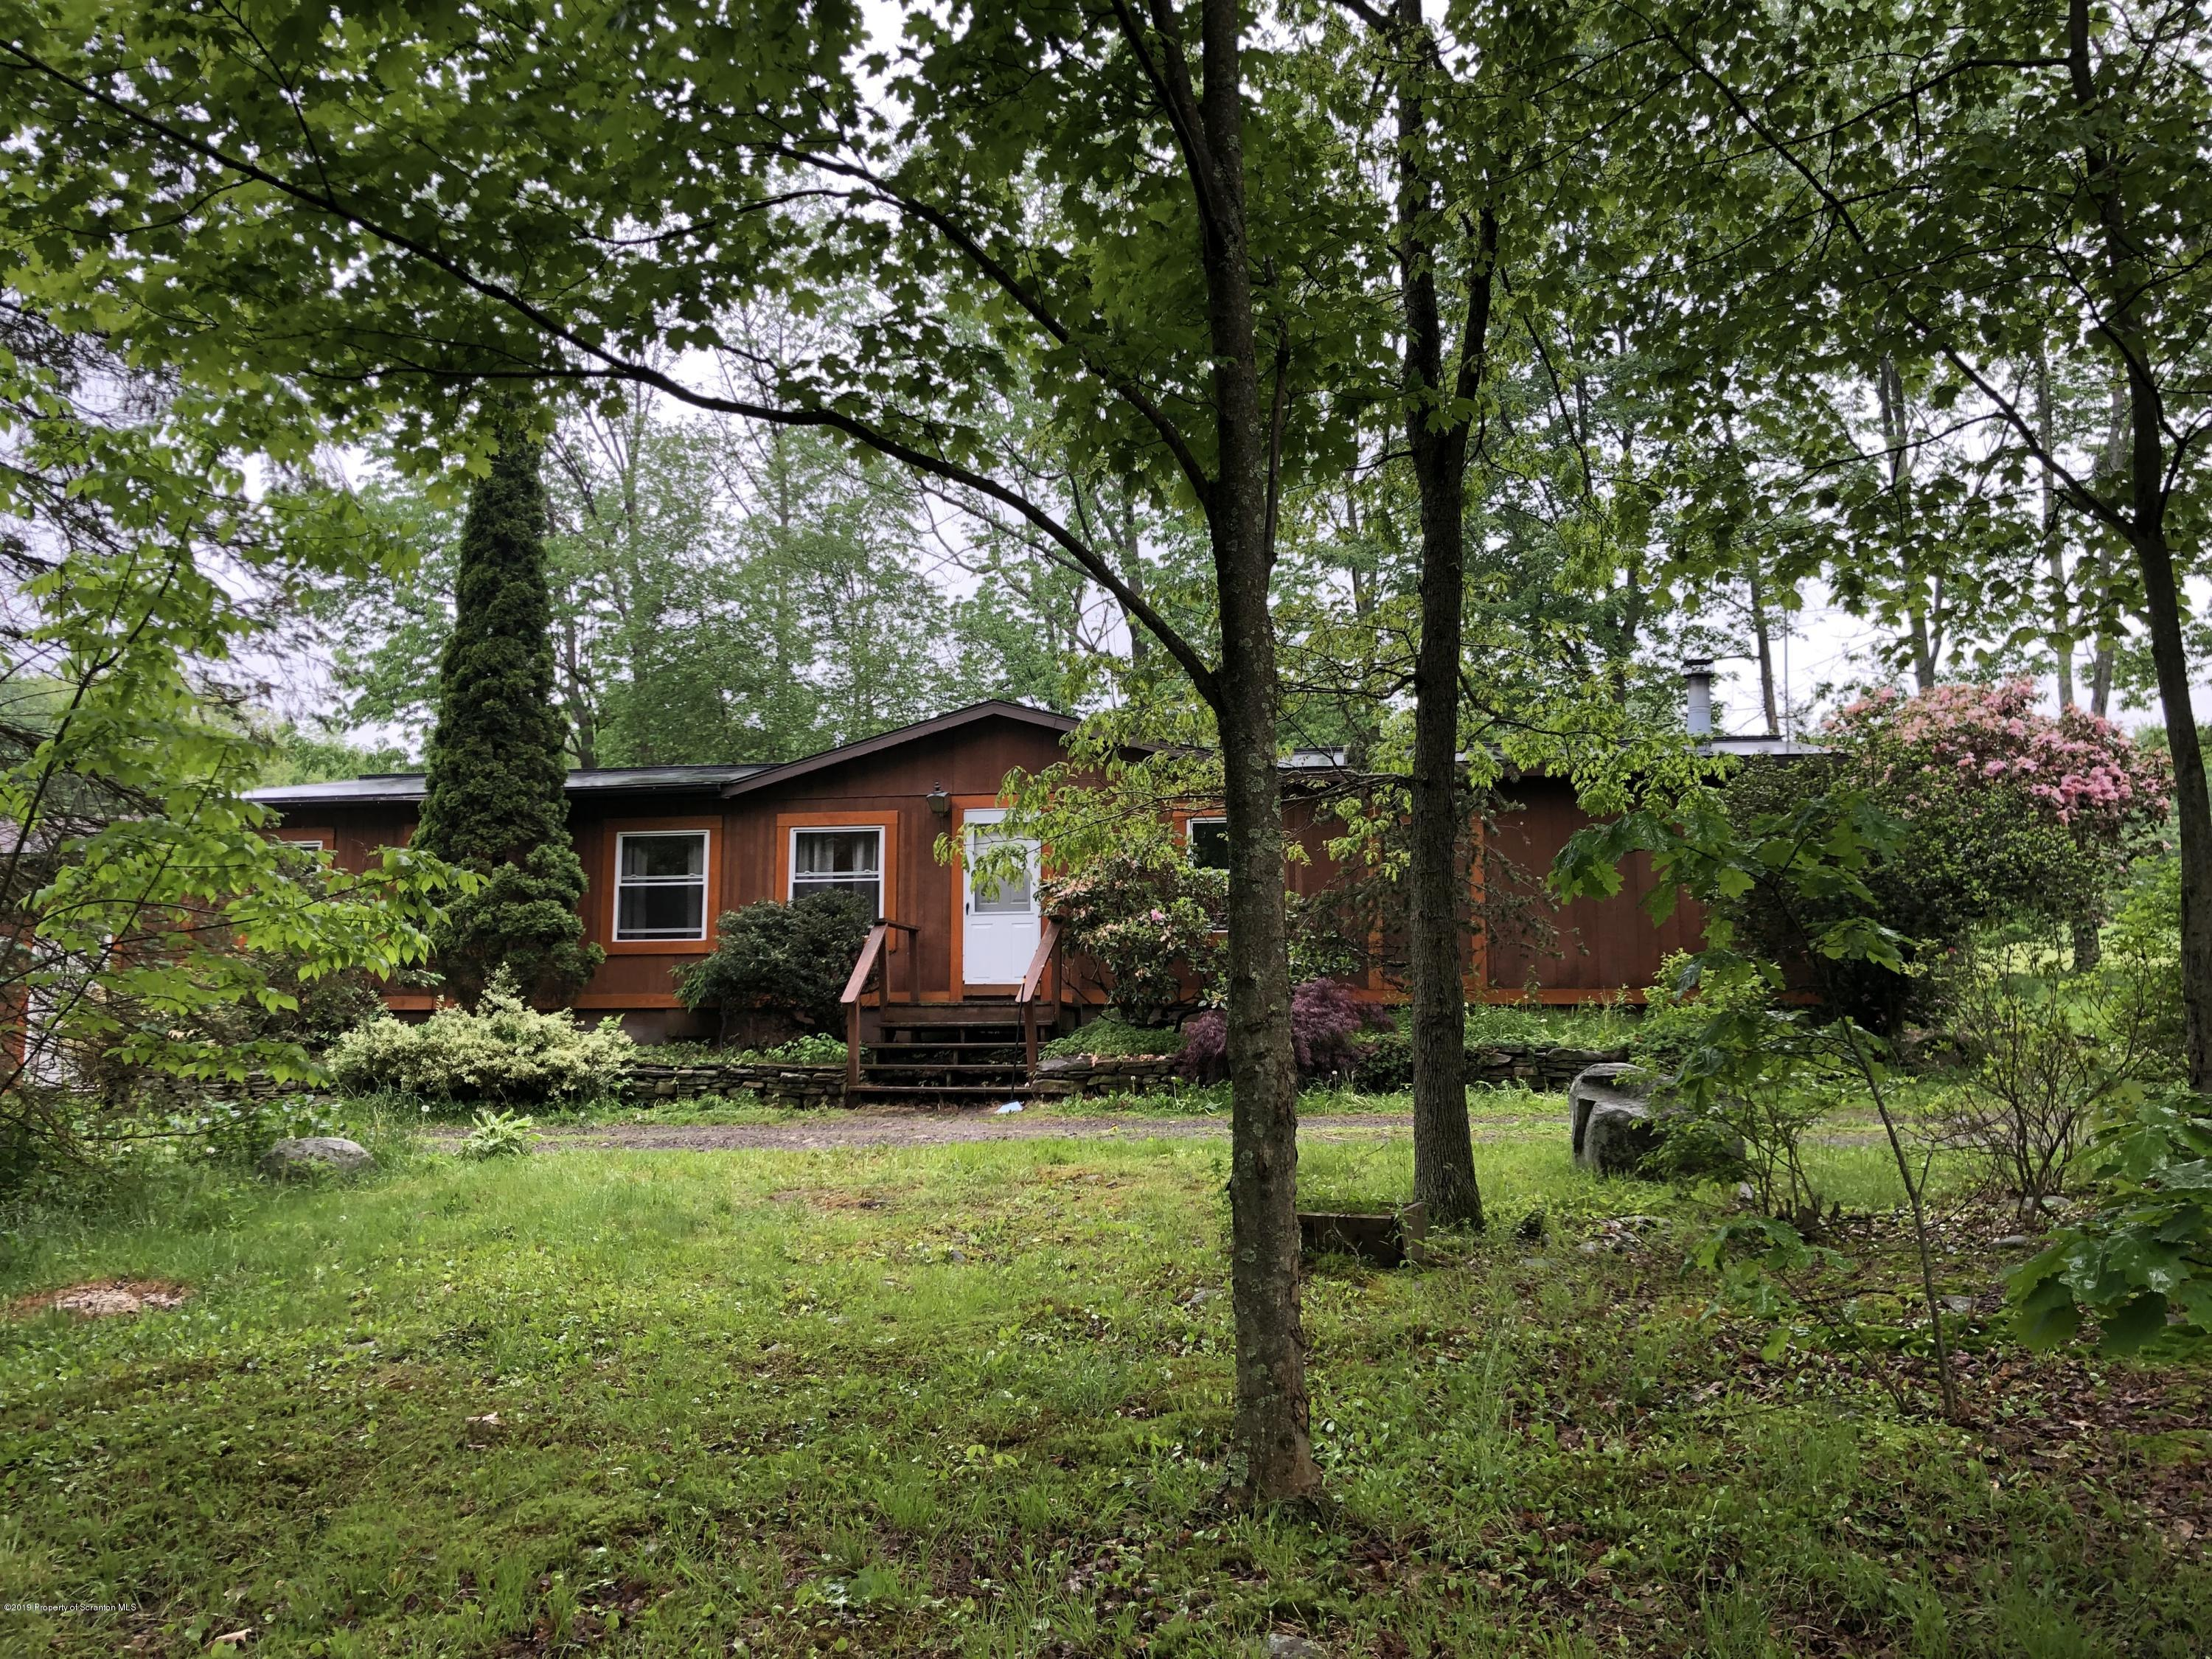 200 Private Drive, Spring Brook Twp, Pennsylvania 18444, 3 Bedrooms Bedrooms, 8 Rooms Rooms,2 BathroomsBathrooms,Single Family,For Sale,Private Drive,19-2869